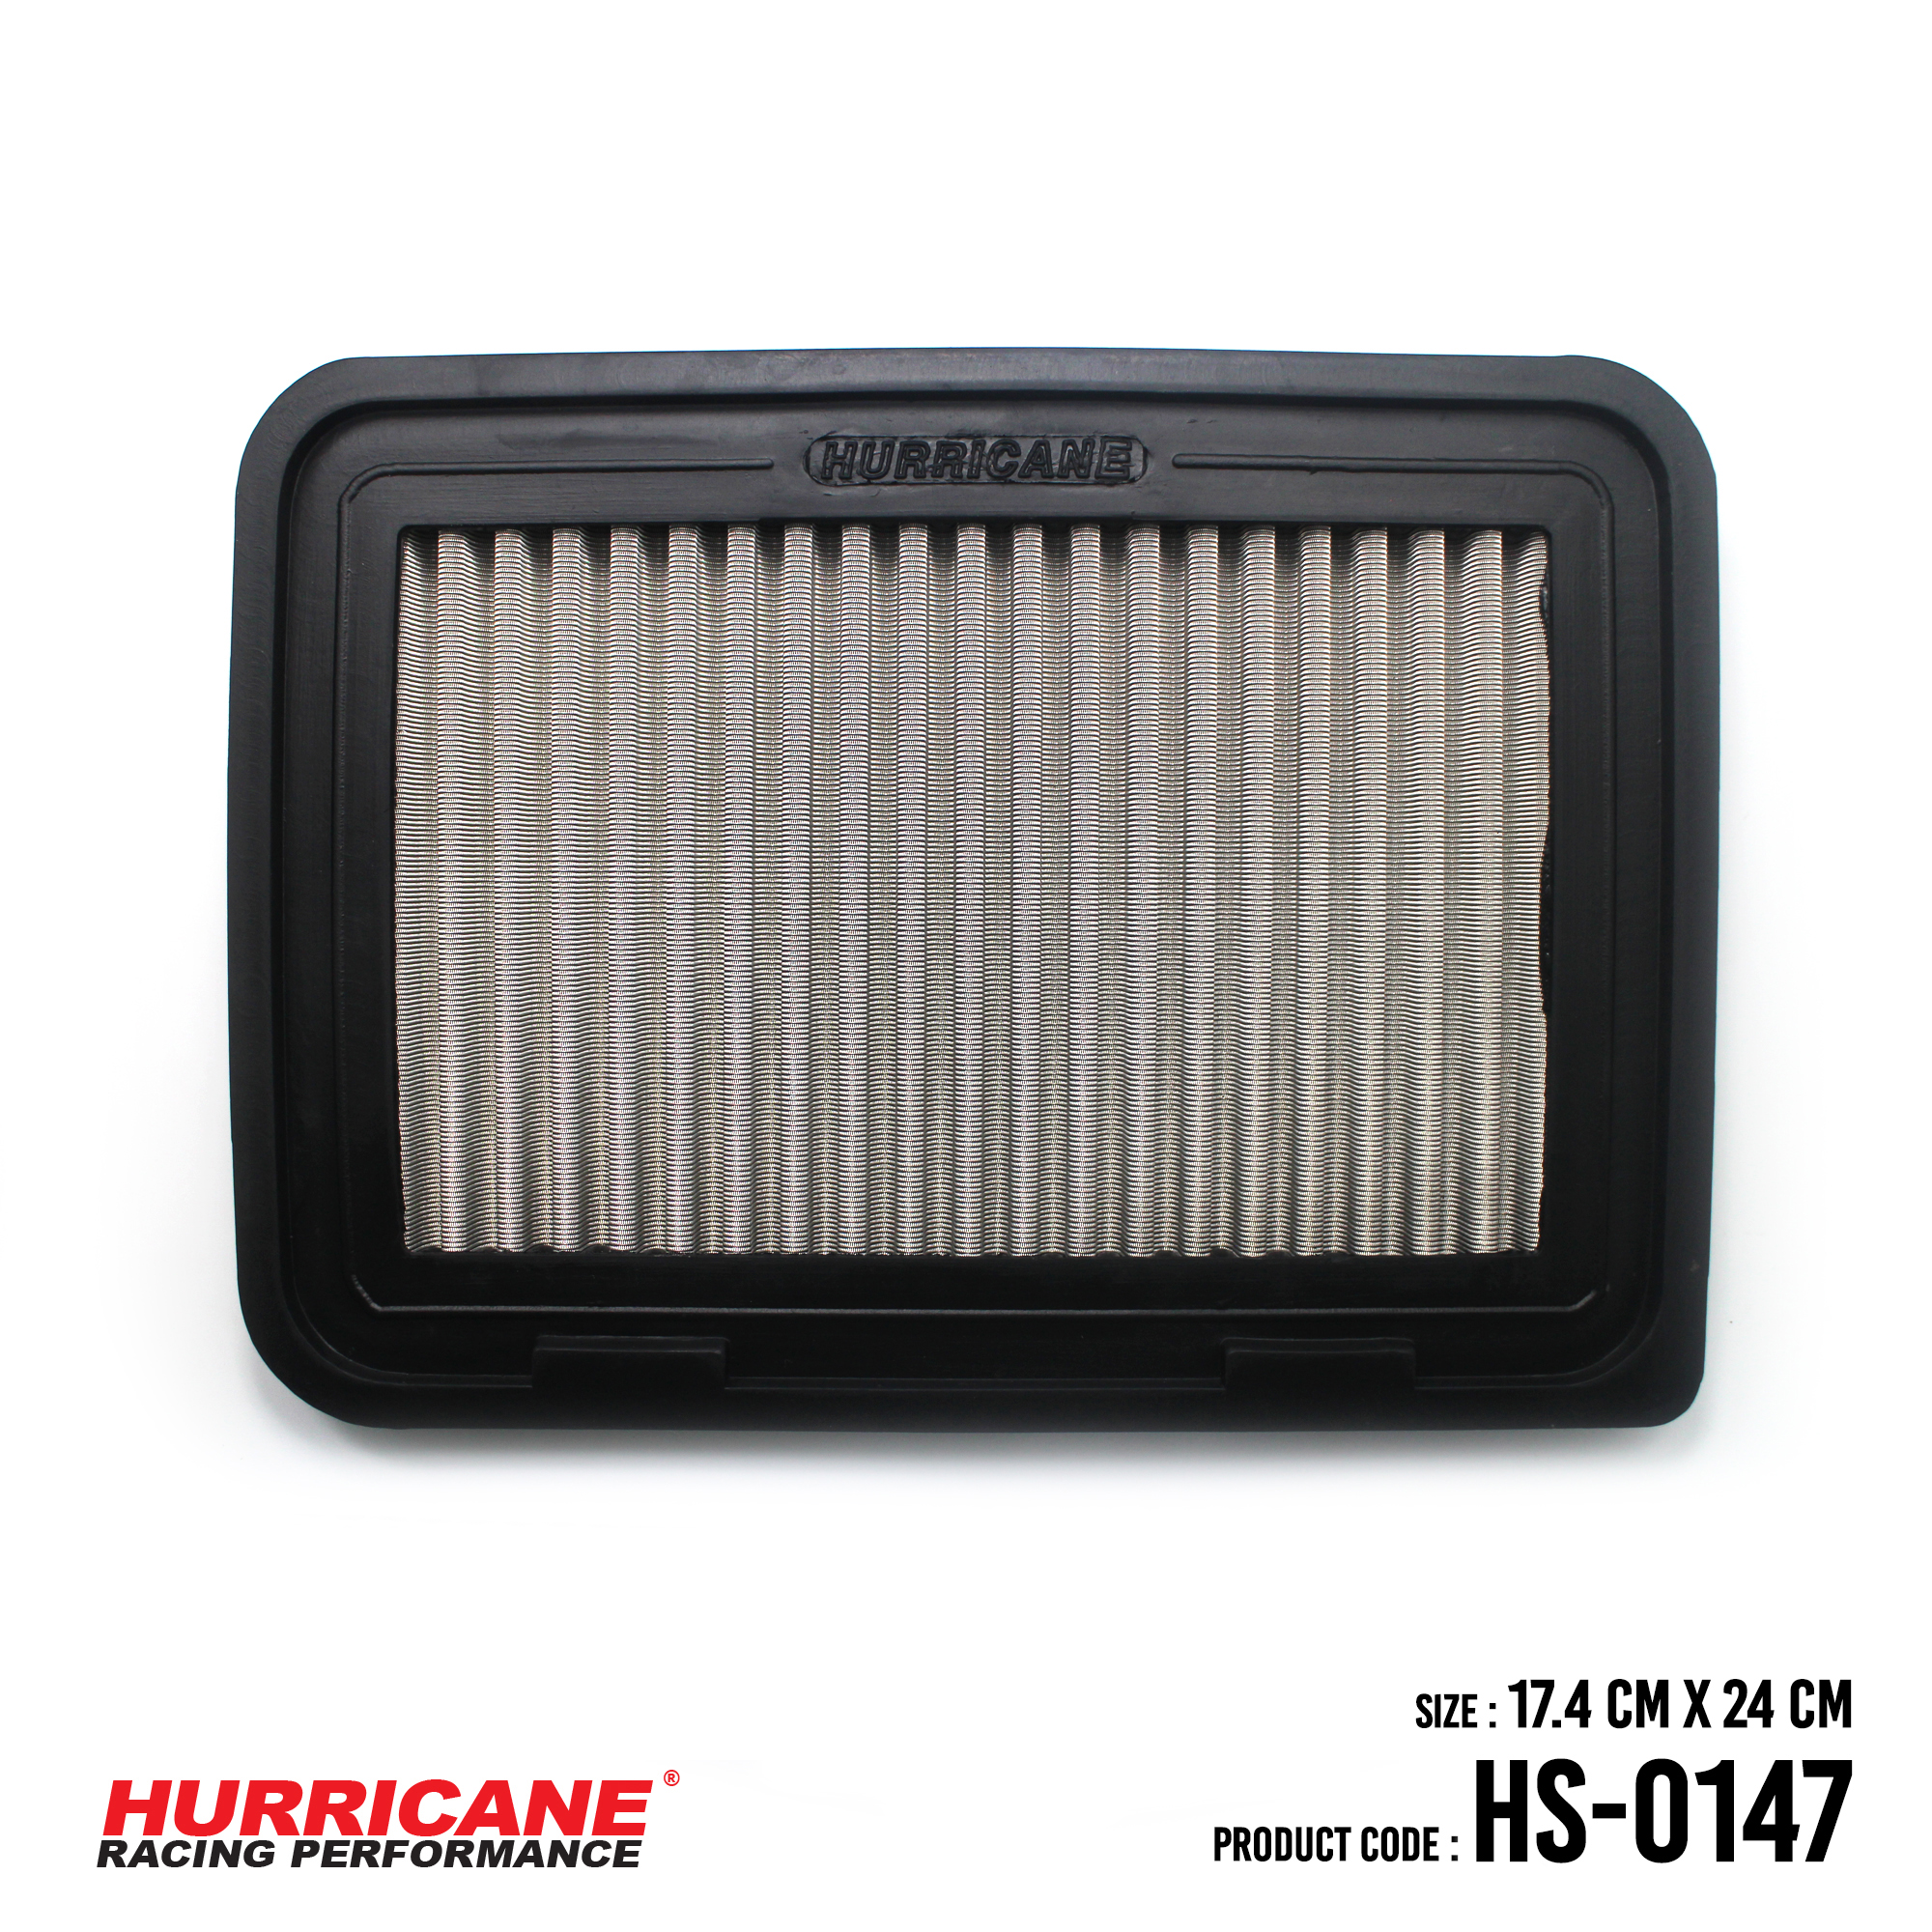 HURRICANE STAINLESS STEEL AIR FILTER FOR HS-0147 PontiacScionToyota